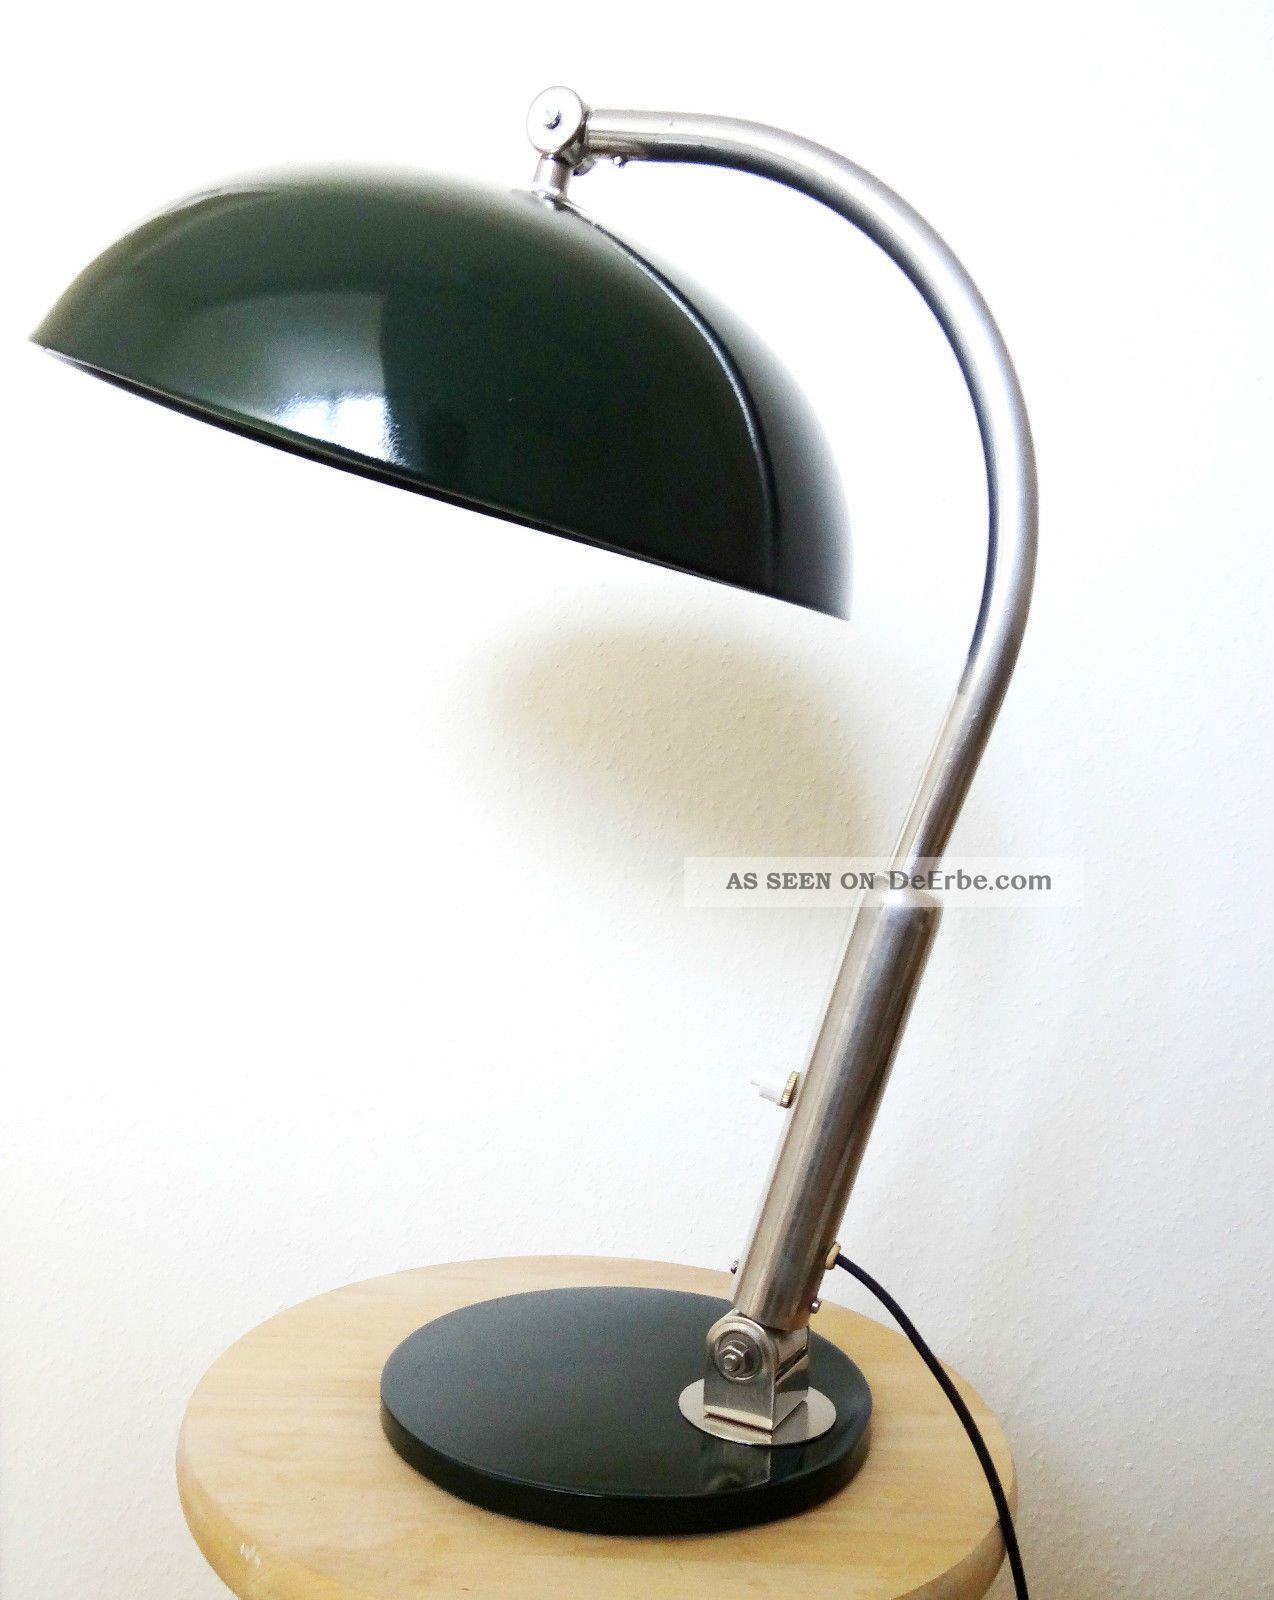 bauhaus hala lampe zeist netherlands desk table lamp 1940 39 s art deco. Black Bedroom Furniture Sets. Home Design Ideas